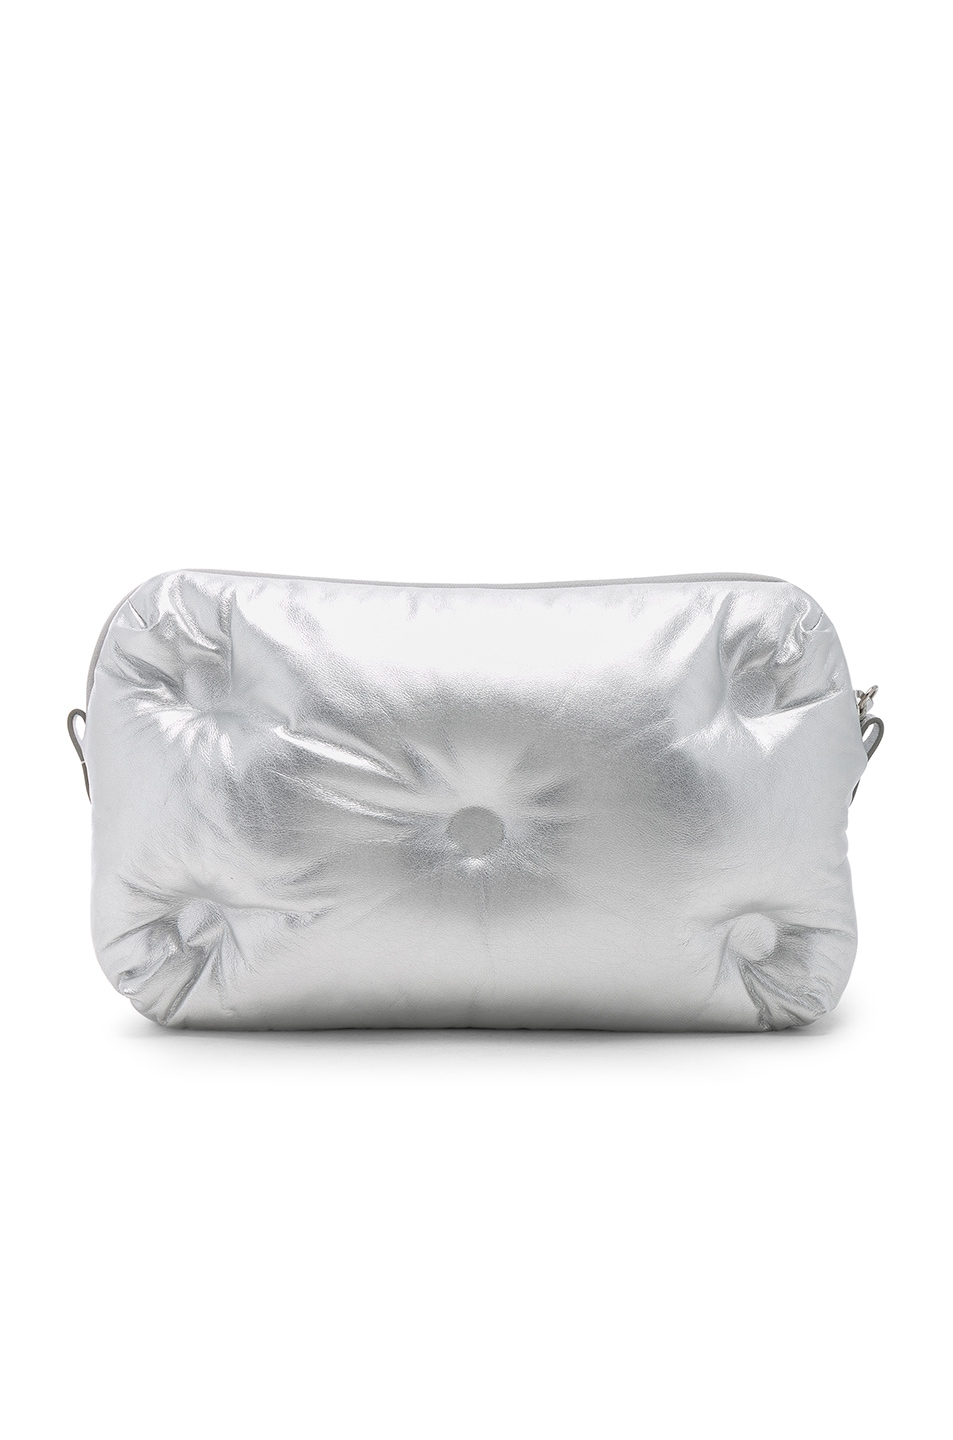 Image 3 of Maison Margiela Number Crossbody Bag in Silver